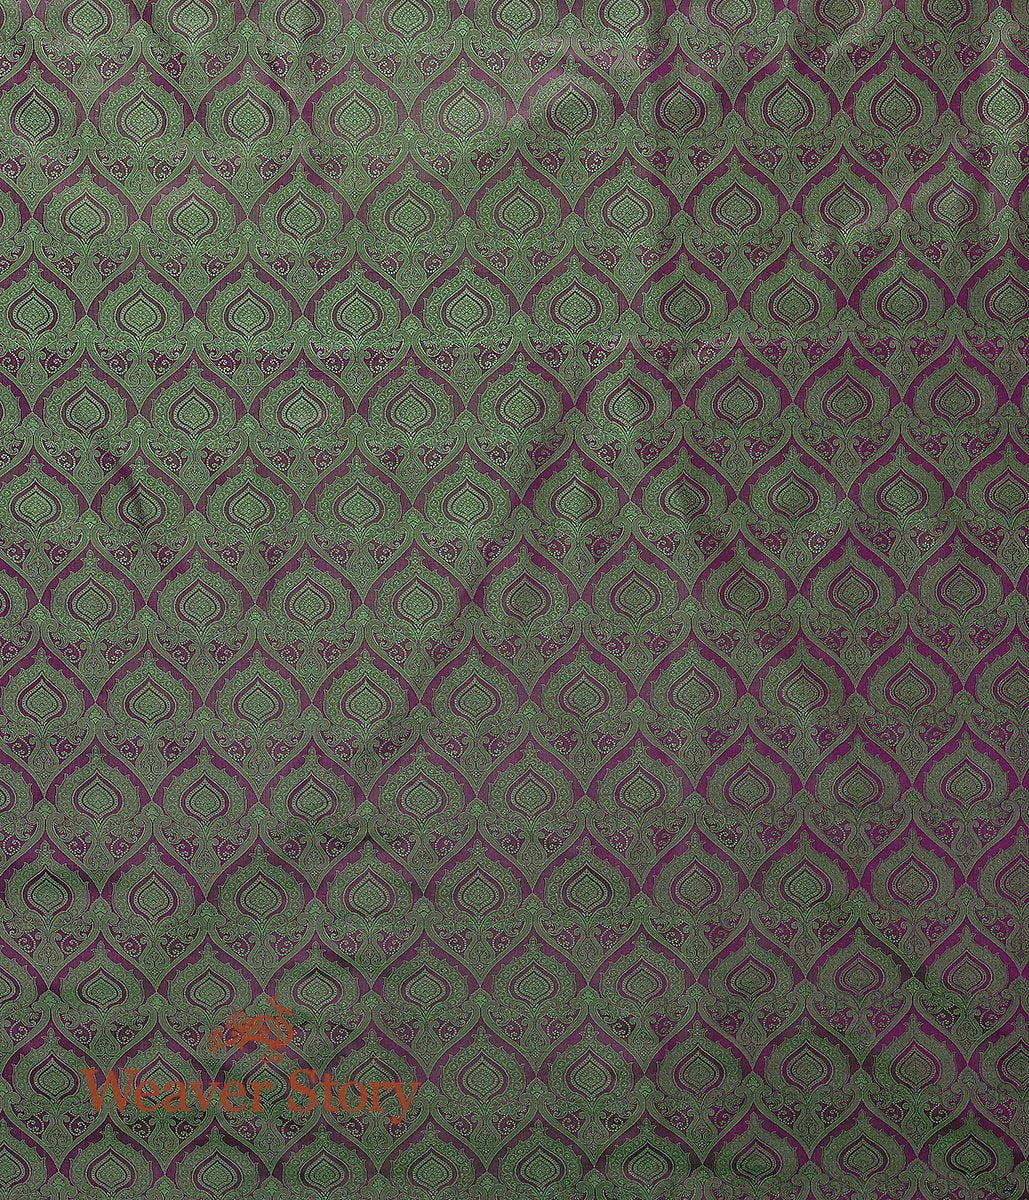 Handwoven Purple and Green Tanchoi Fabric